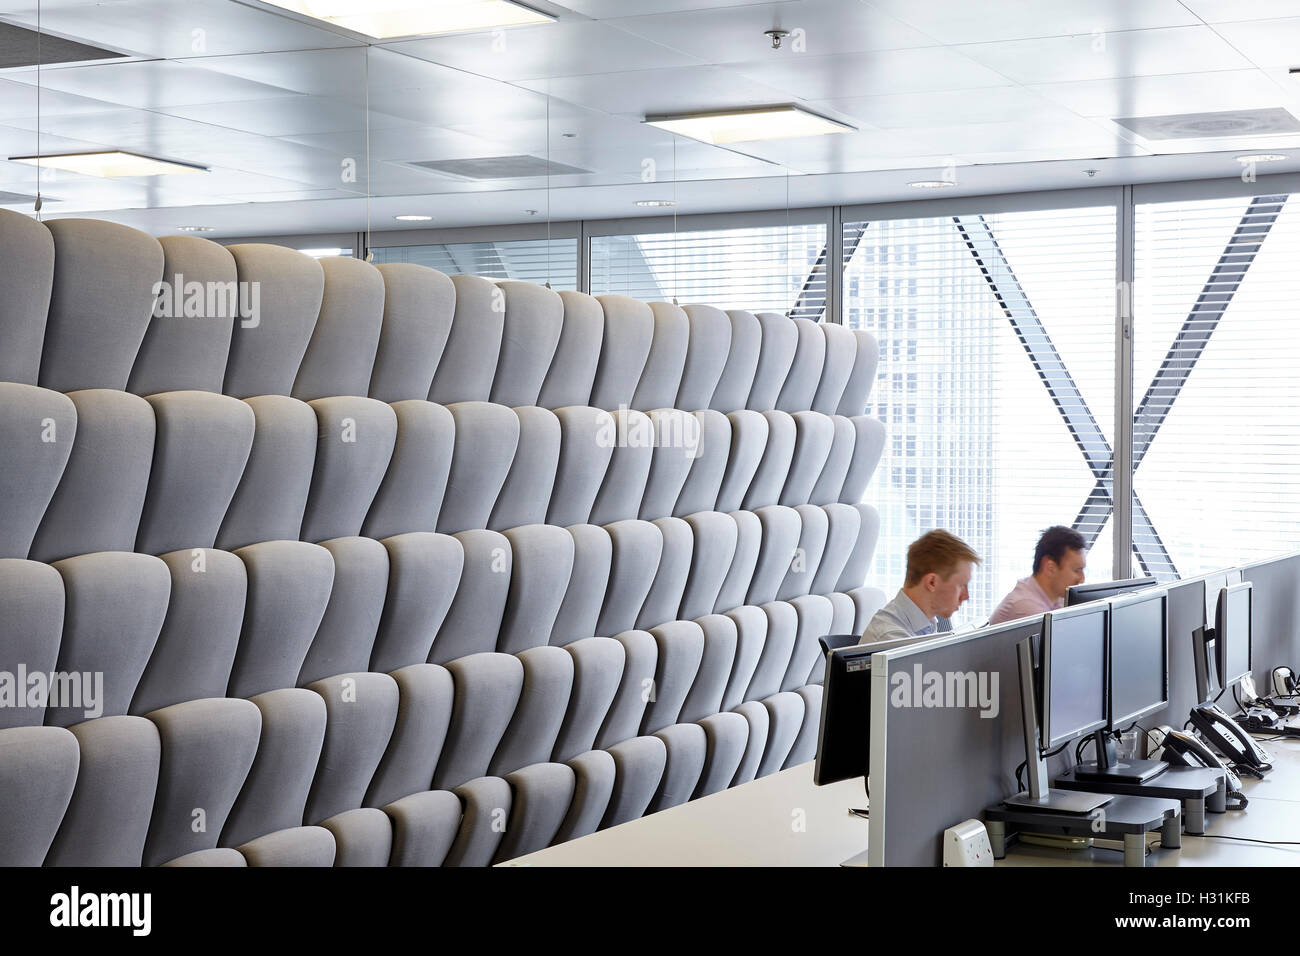 padded movable sound proof walls and ioffice workers at desks